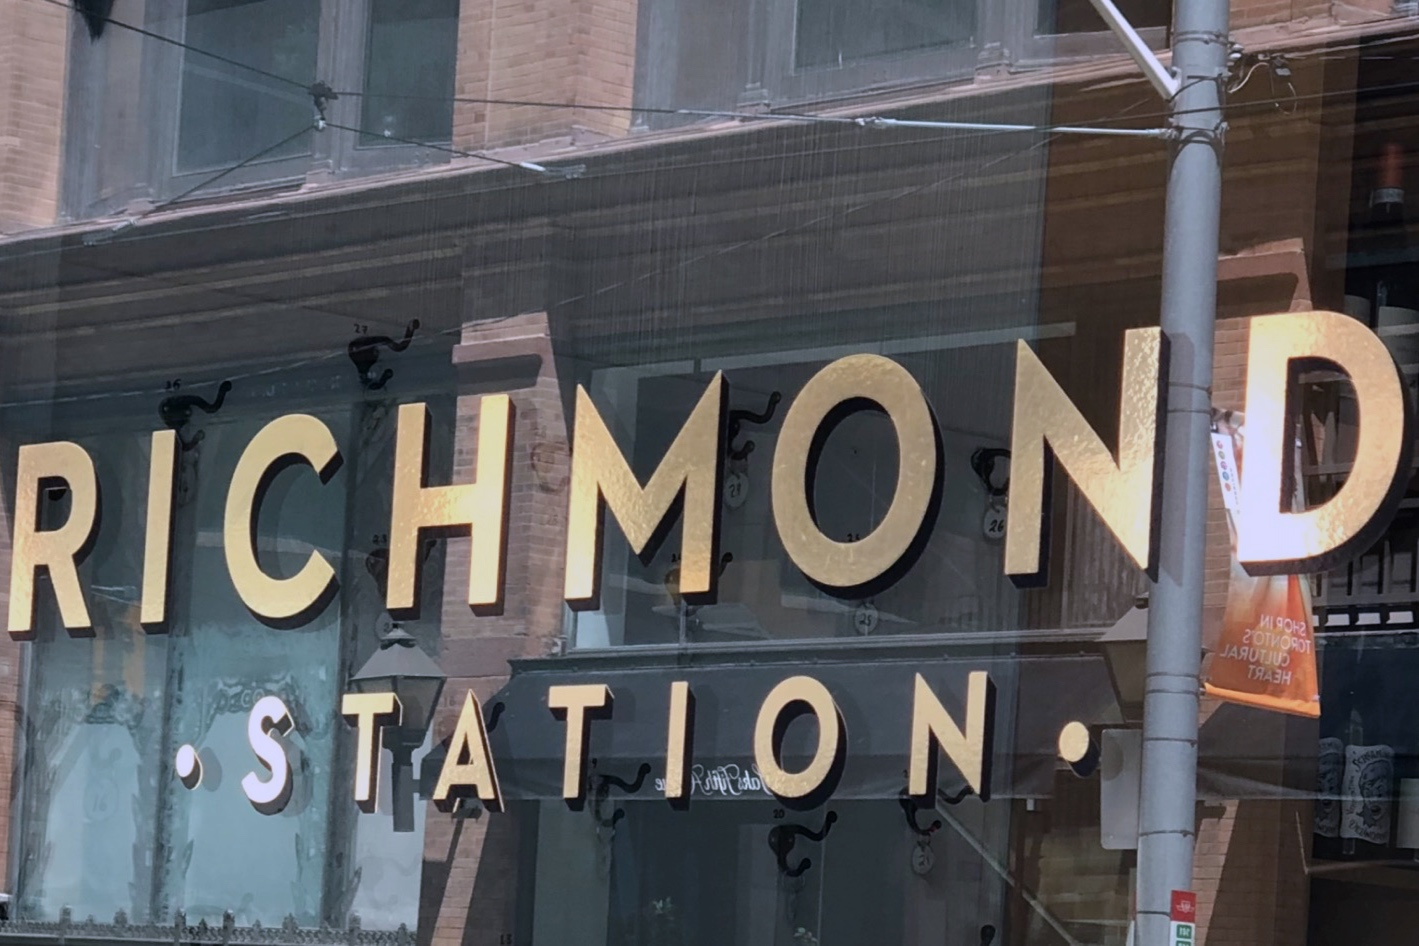 Richmond Station -